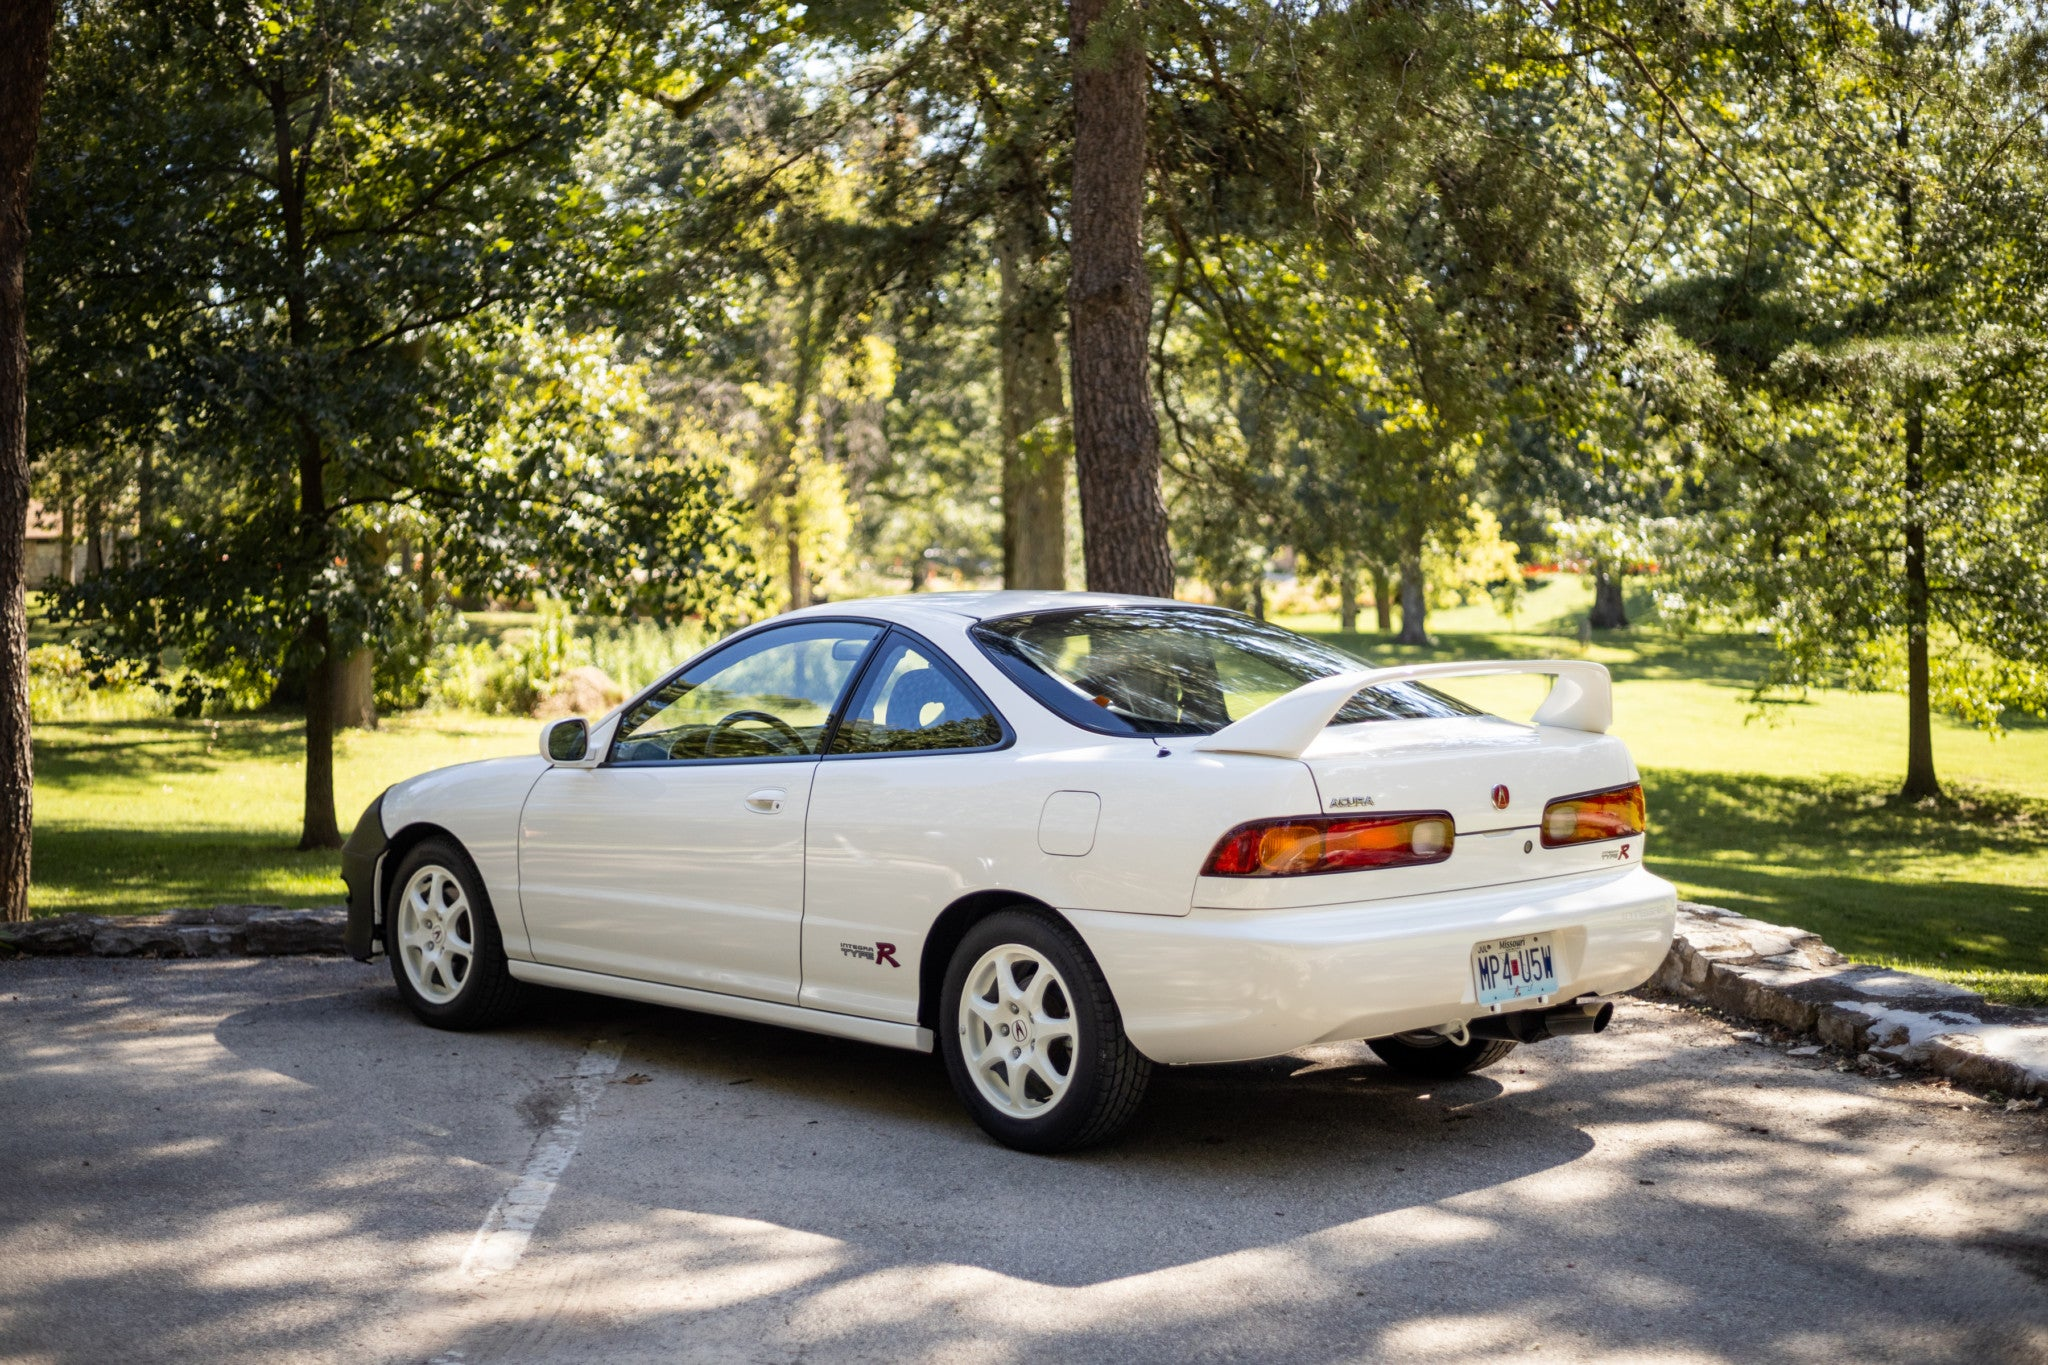 1997 Acura Integra Type R With Just Over 6 000 Miles Sells For Colossal 82 000